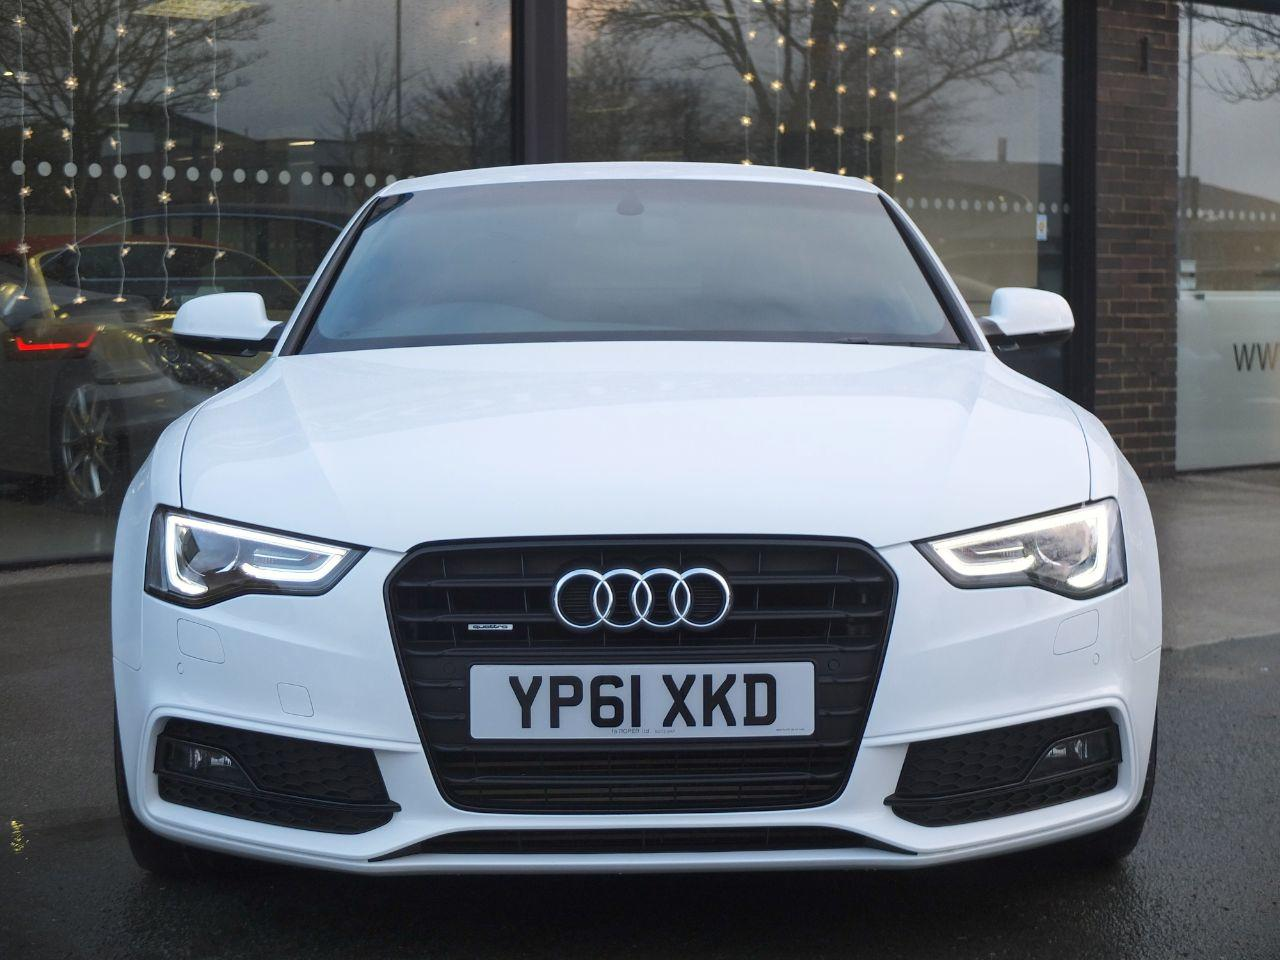 Audi A5 Coupe 3.0 TDI 245ps Quattro Black Edition S Tronic (Facelift Model) +++Spec Coupe Diesel Ibis White